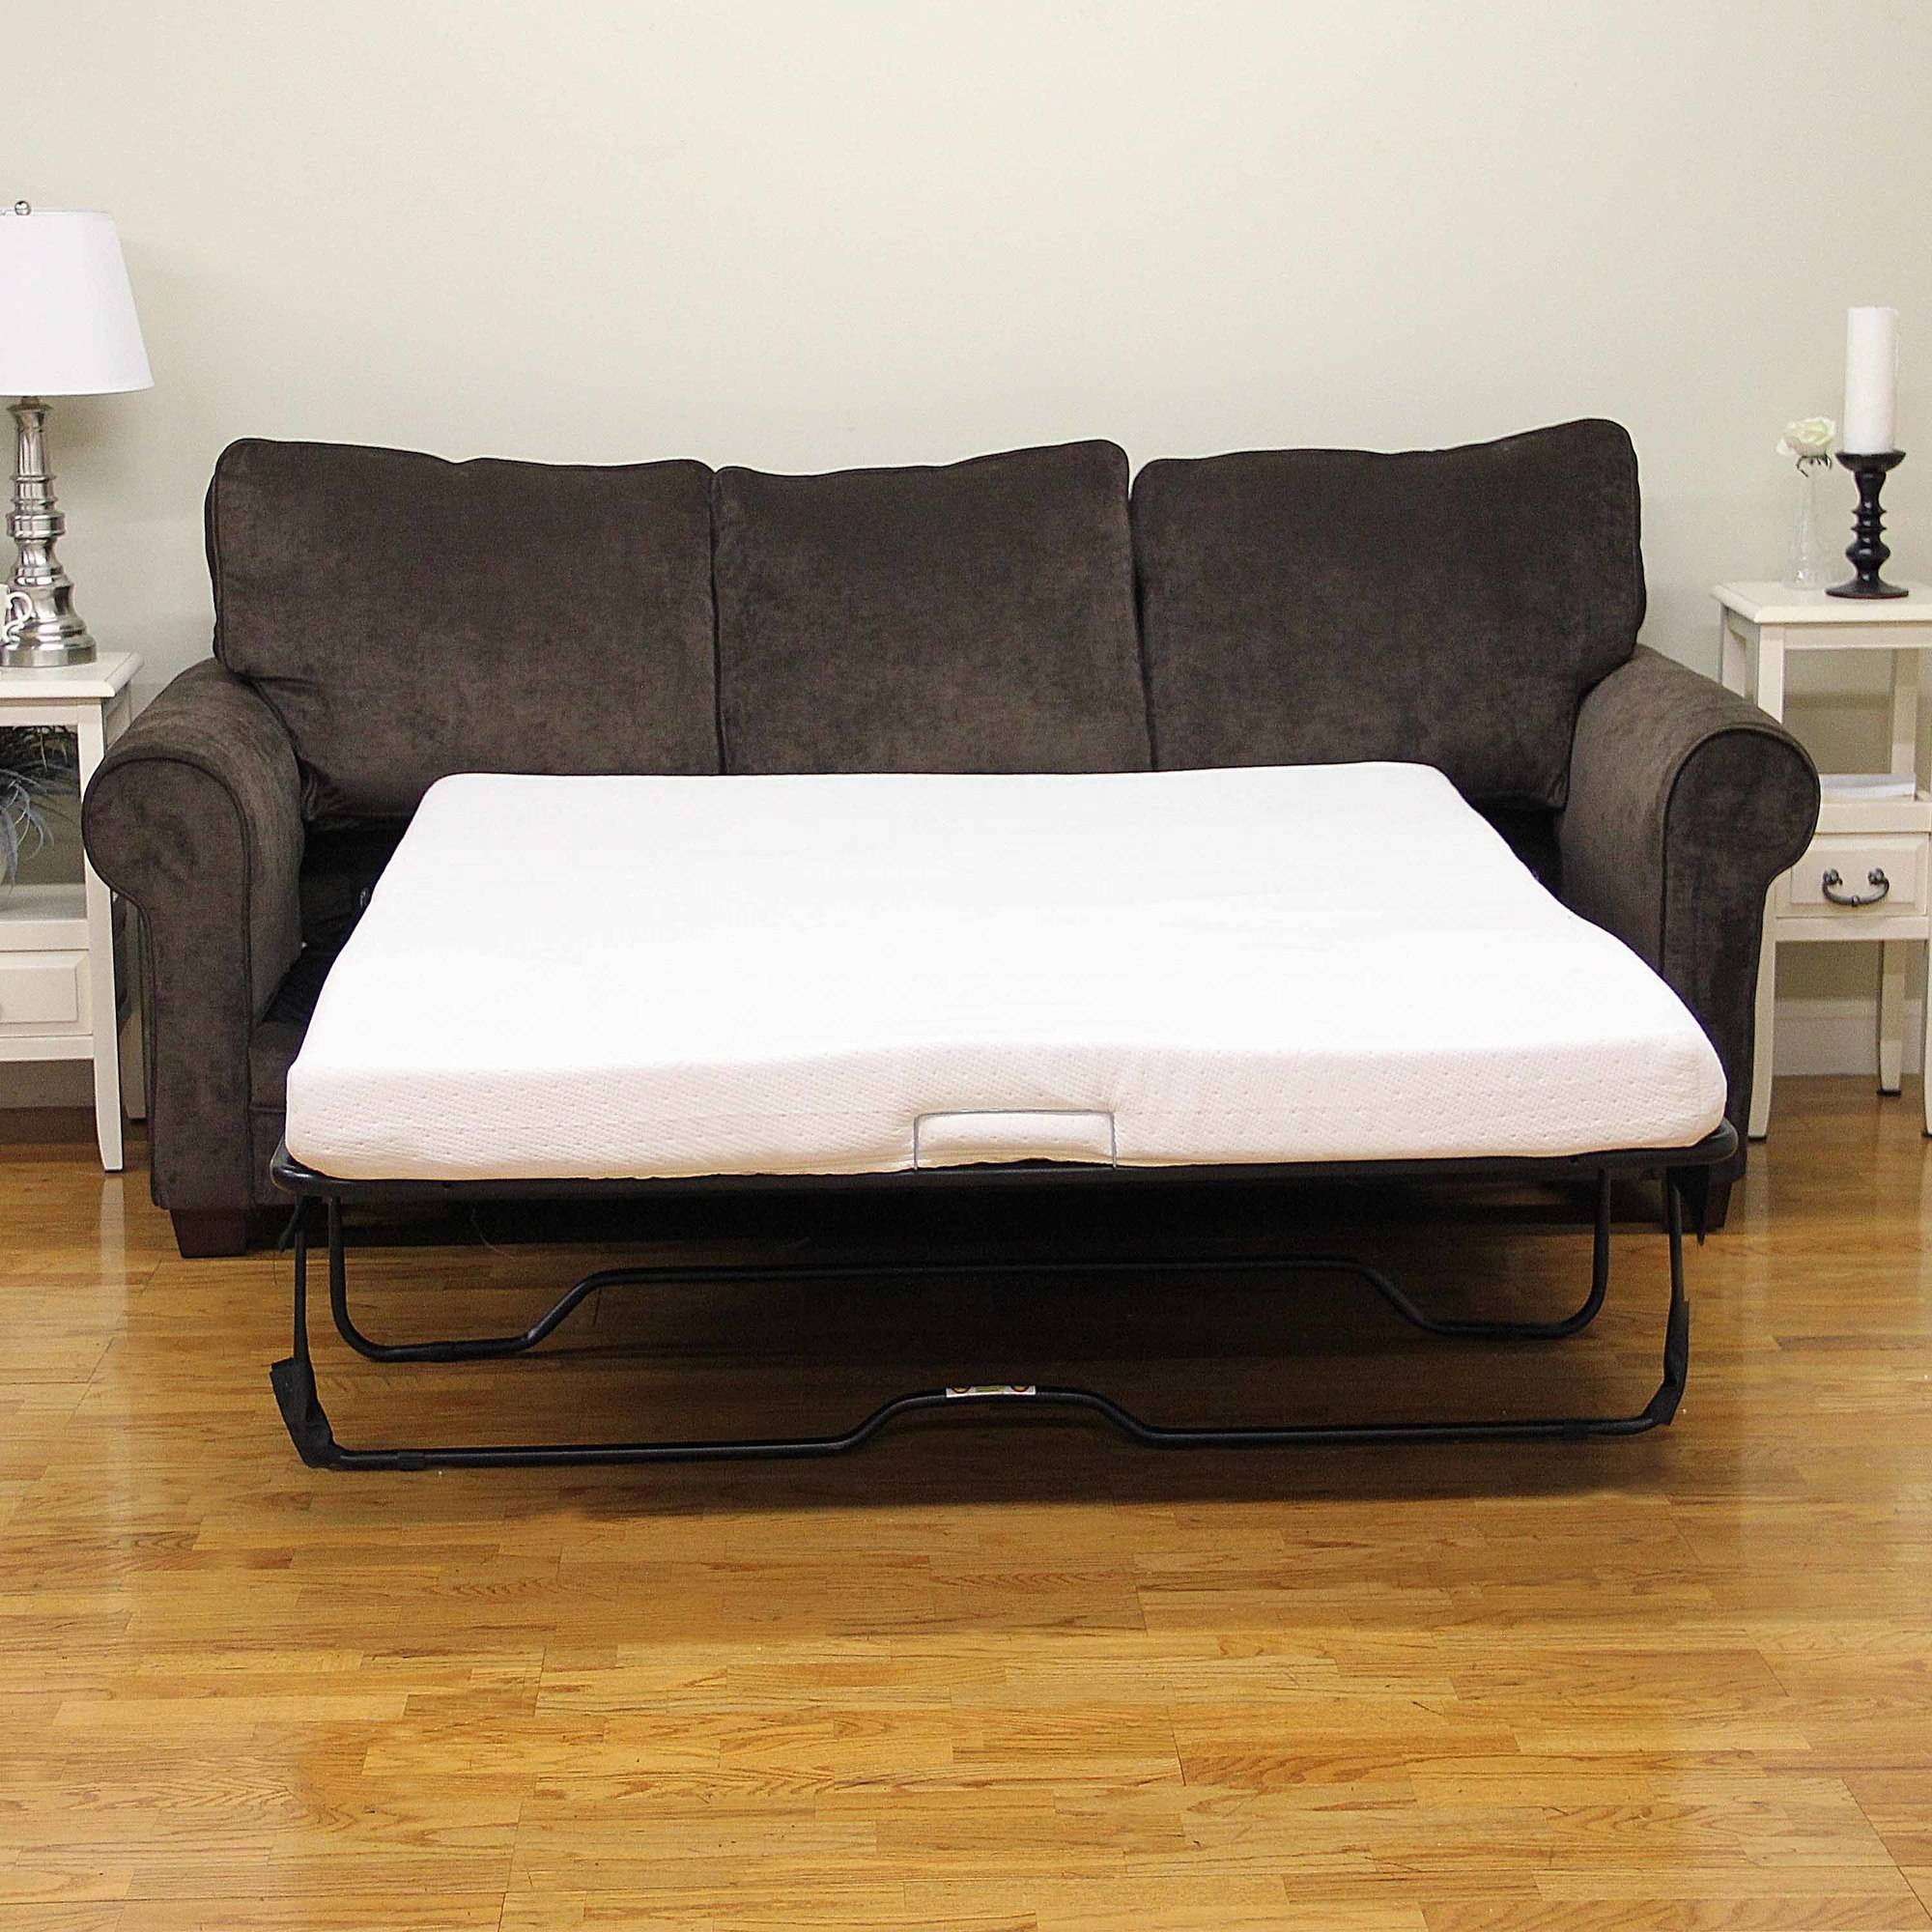 "Sofa Bed modern sleep memory foam 4.5"" sofa bed mattress, multiple sizes"